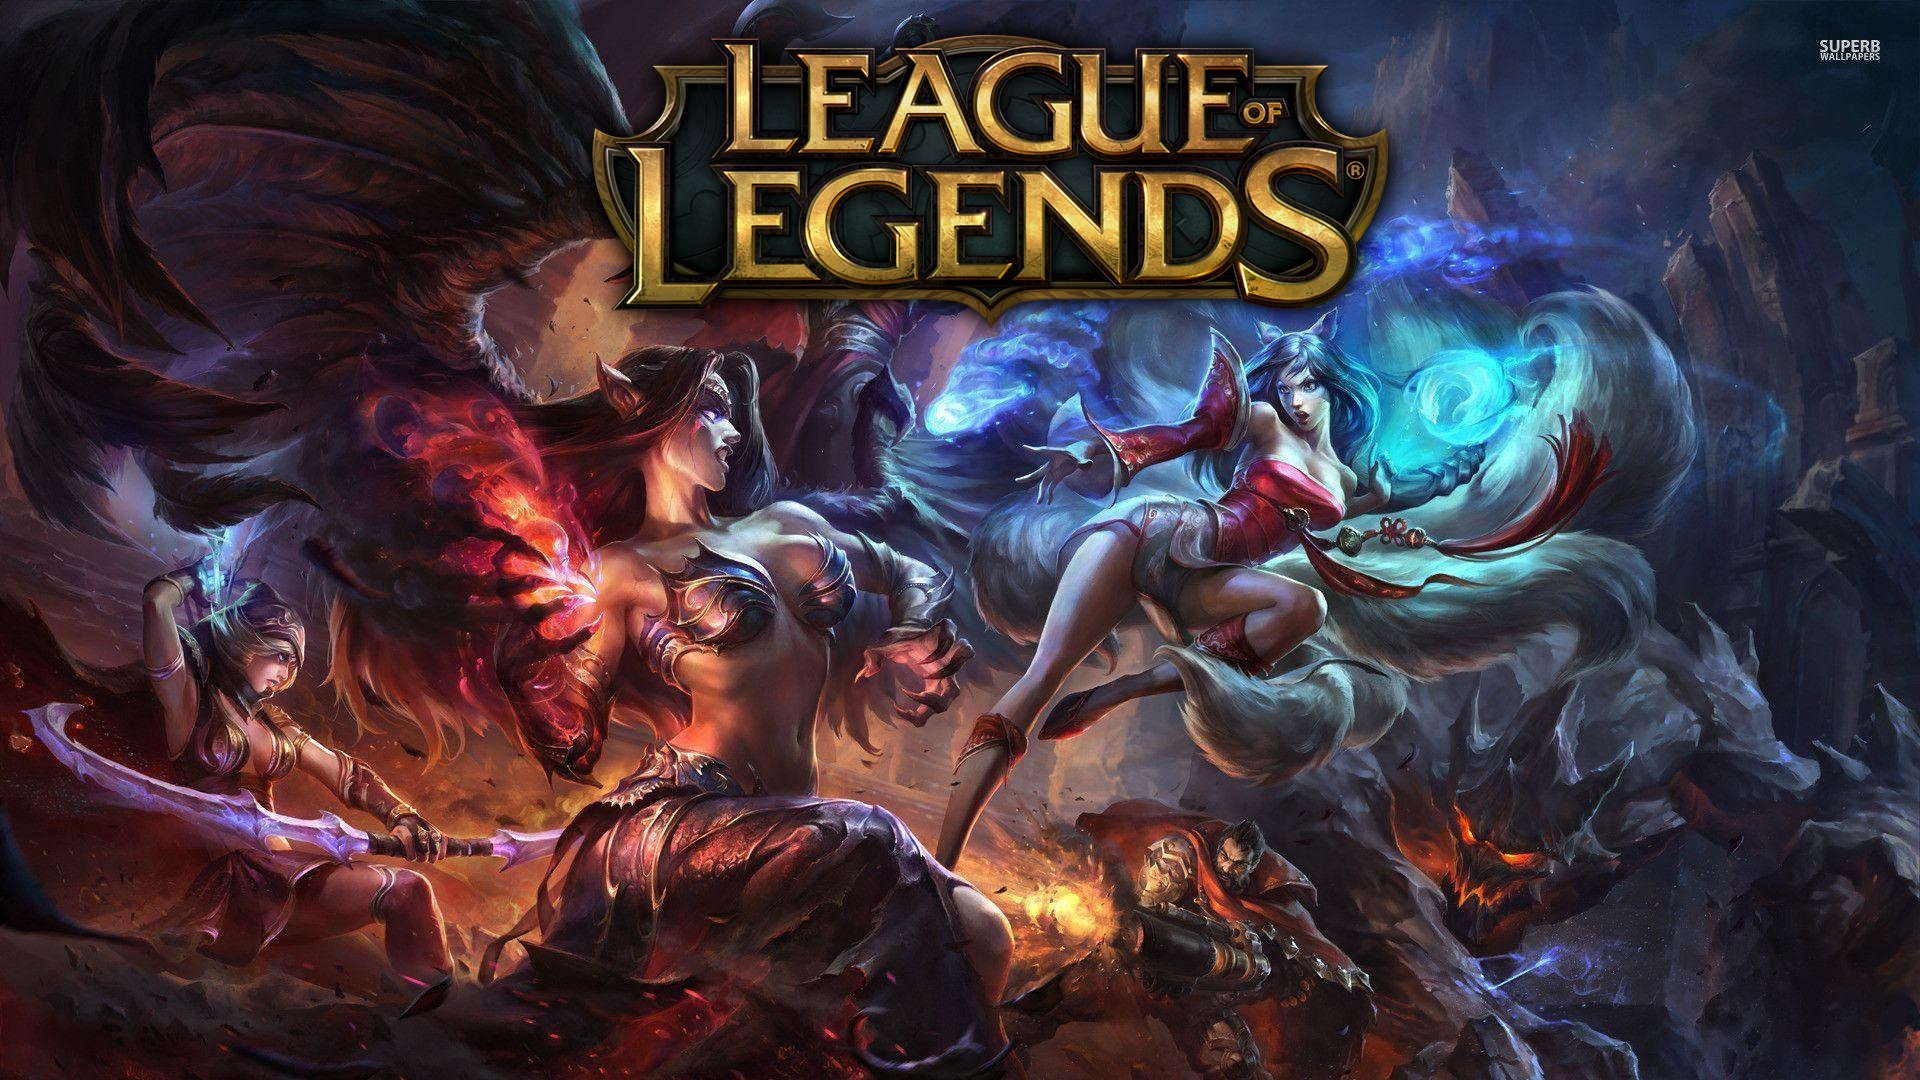 [FPS Benchmarks] League Of Legends on NVIDIA GeForce RTX 3060 (130W) and RTX 3060 (75W) – the 130W GPU is 23% faster